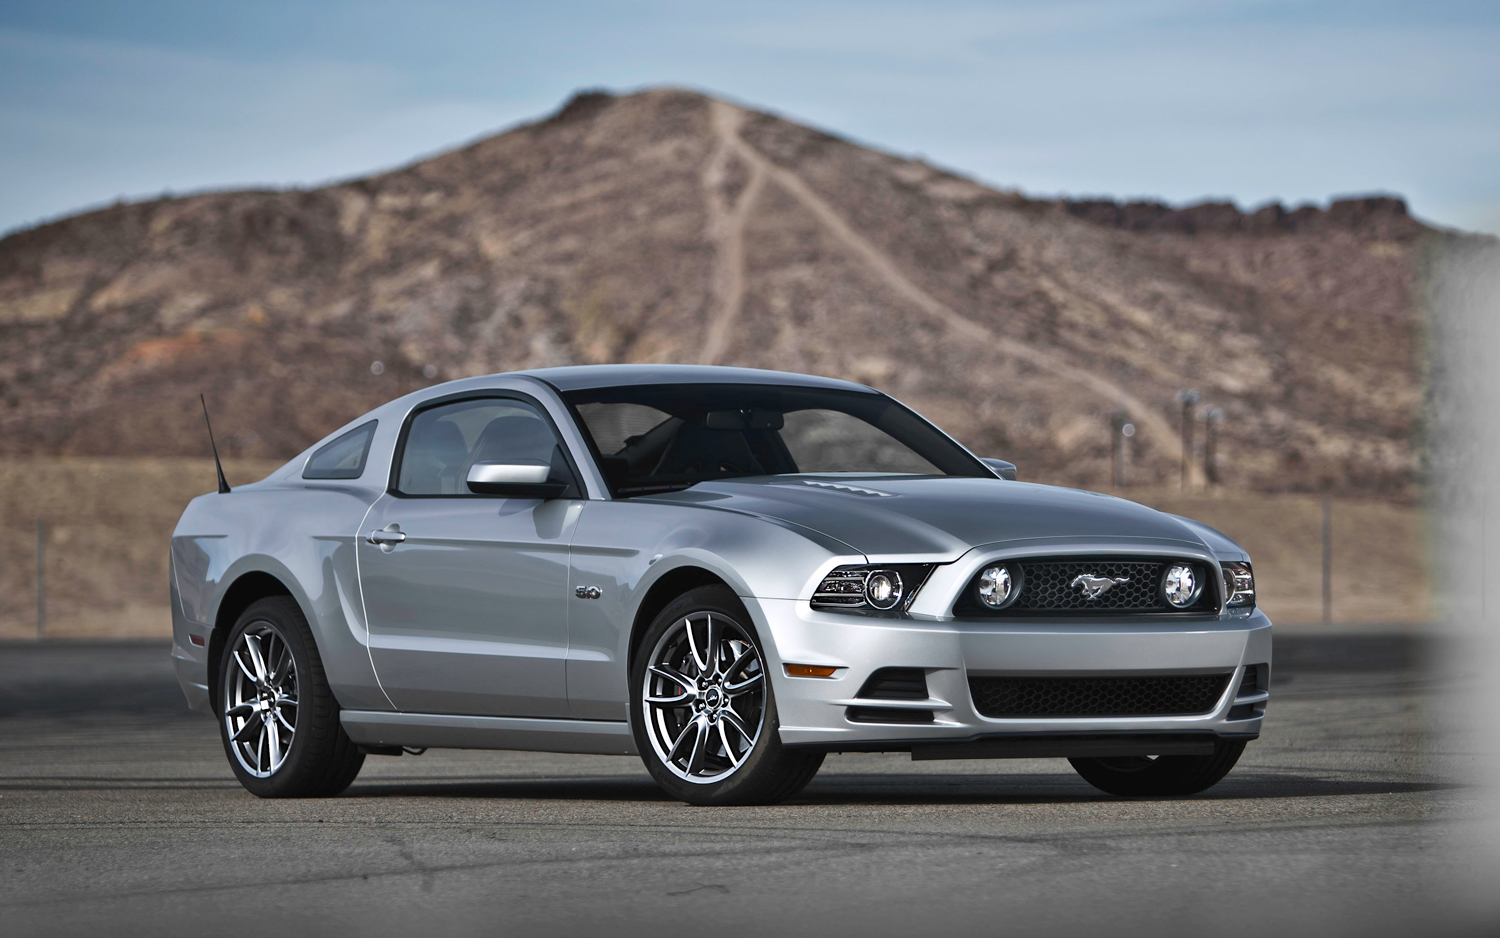 2013 Ford Mustang #18